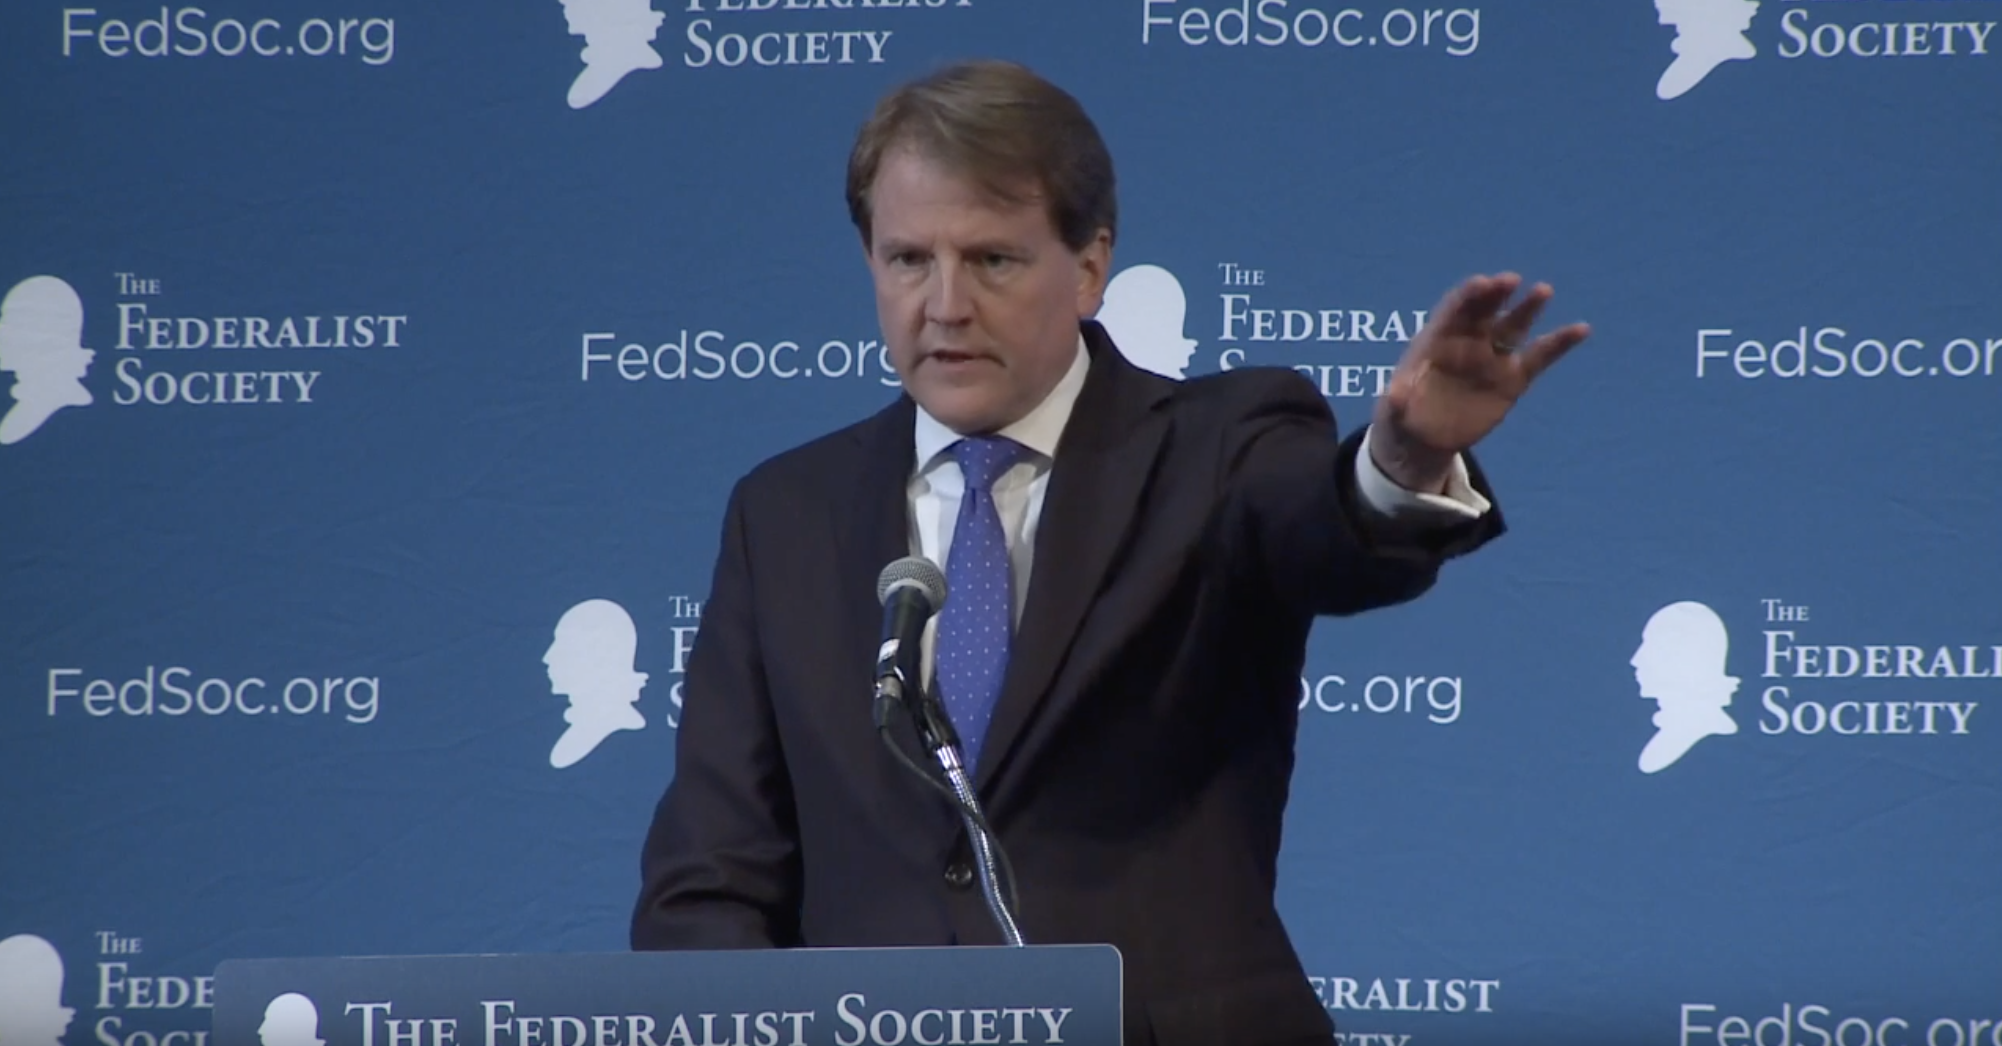 Former White House counsel Don McGahn speaks at a Federalist Society convention in 2017. (YouTube screenshot/Federalist Society)